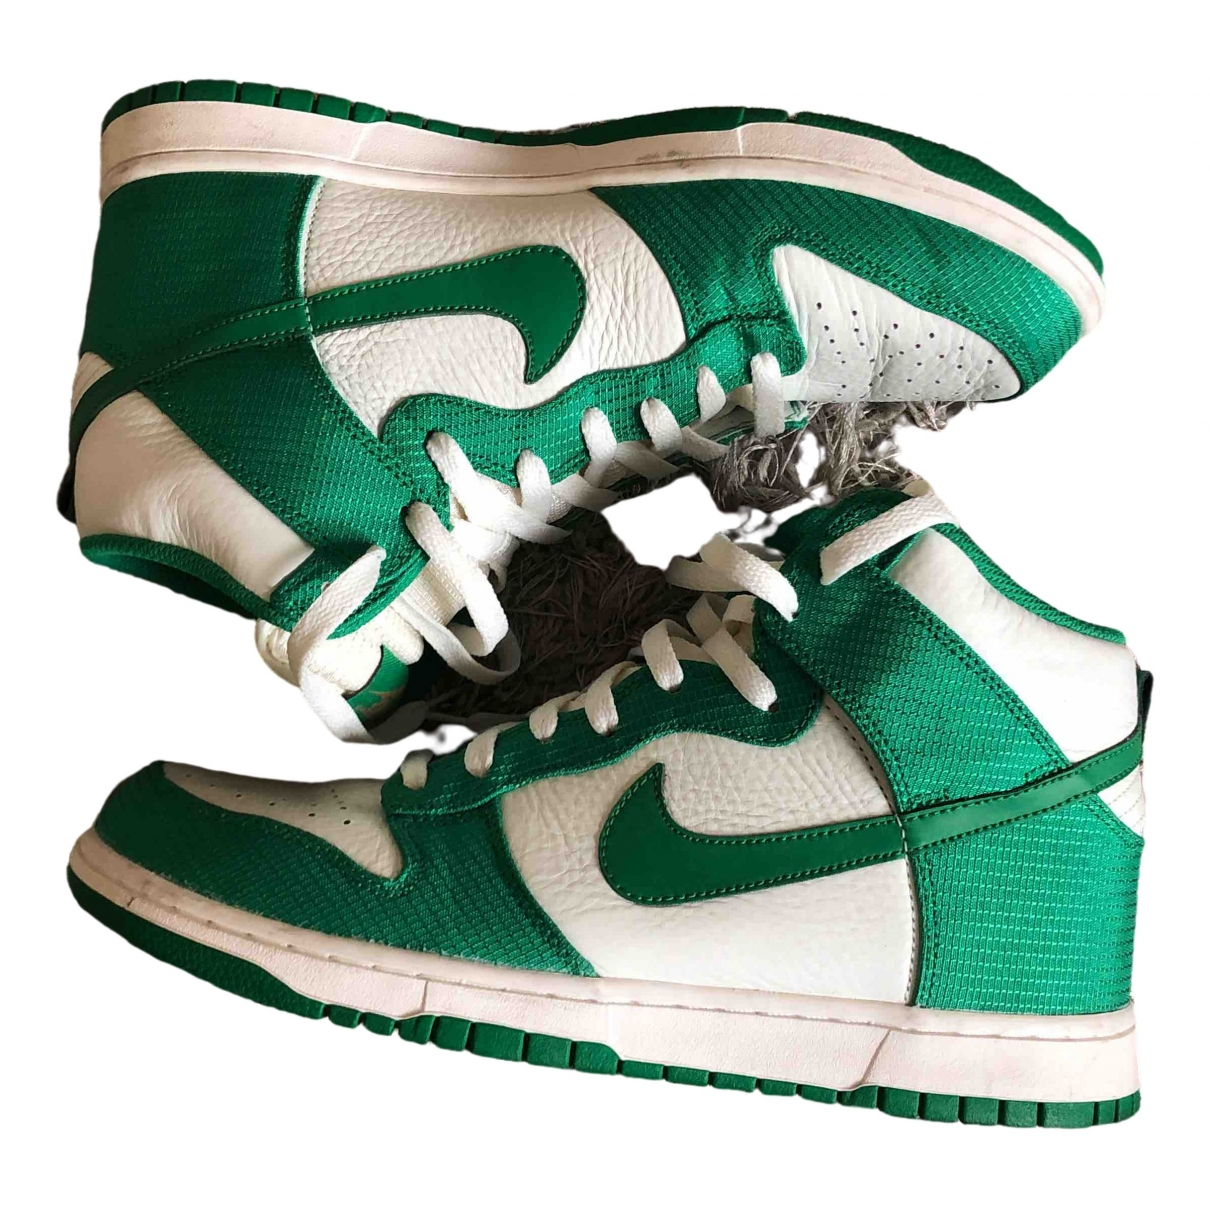 Nike SB Dunk  Green Leather Trainers for Men 10.5 US